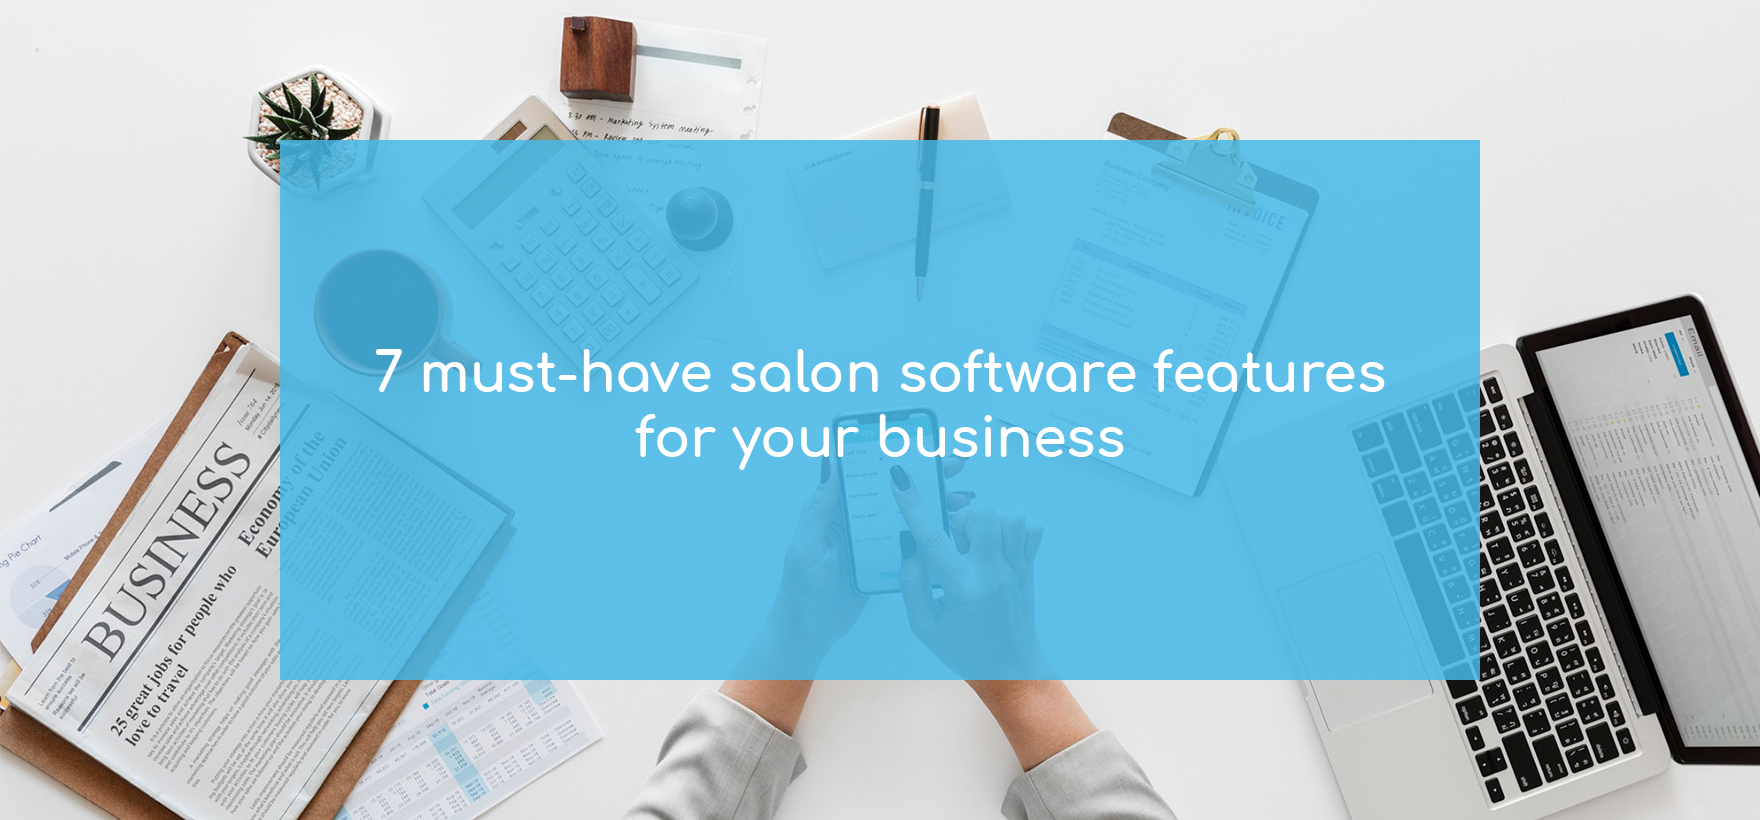 7 must-have salon management software features for your business